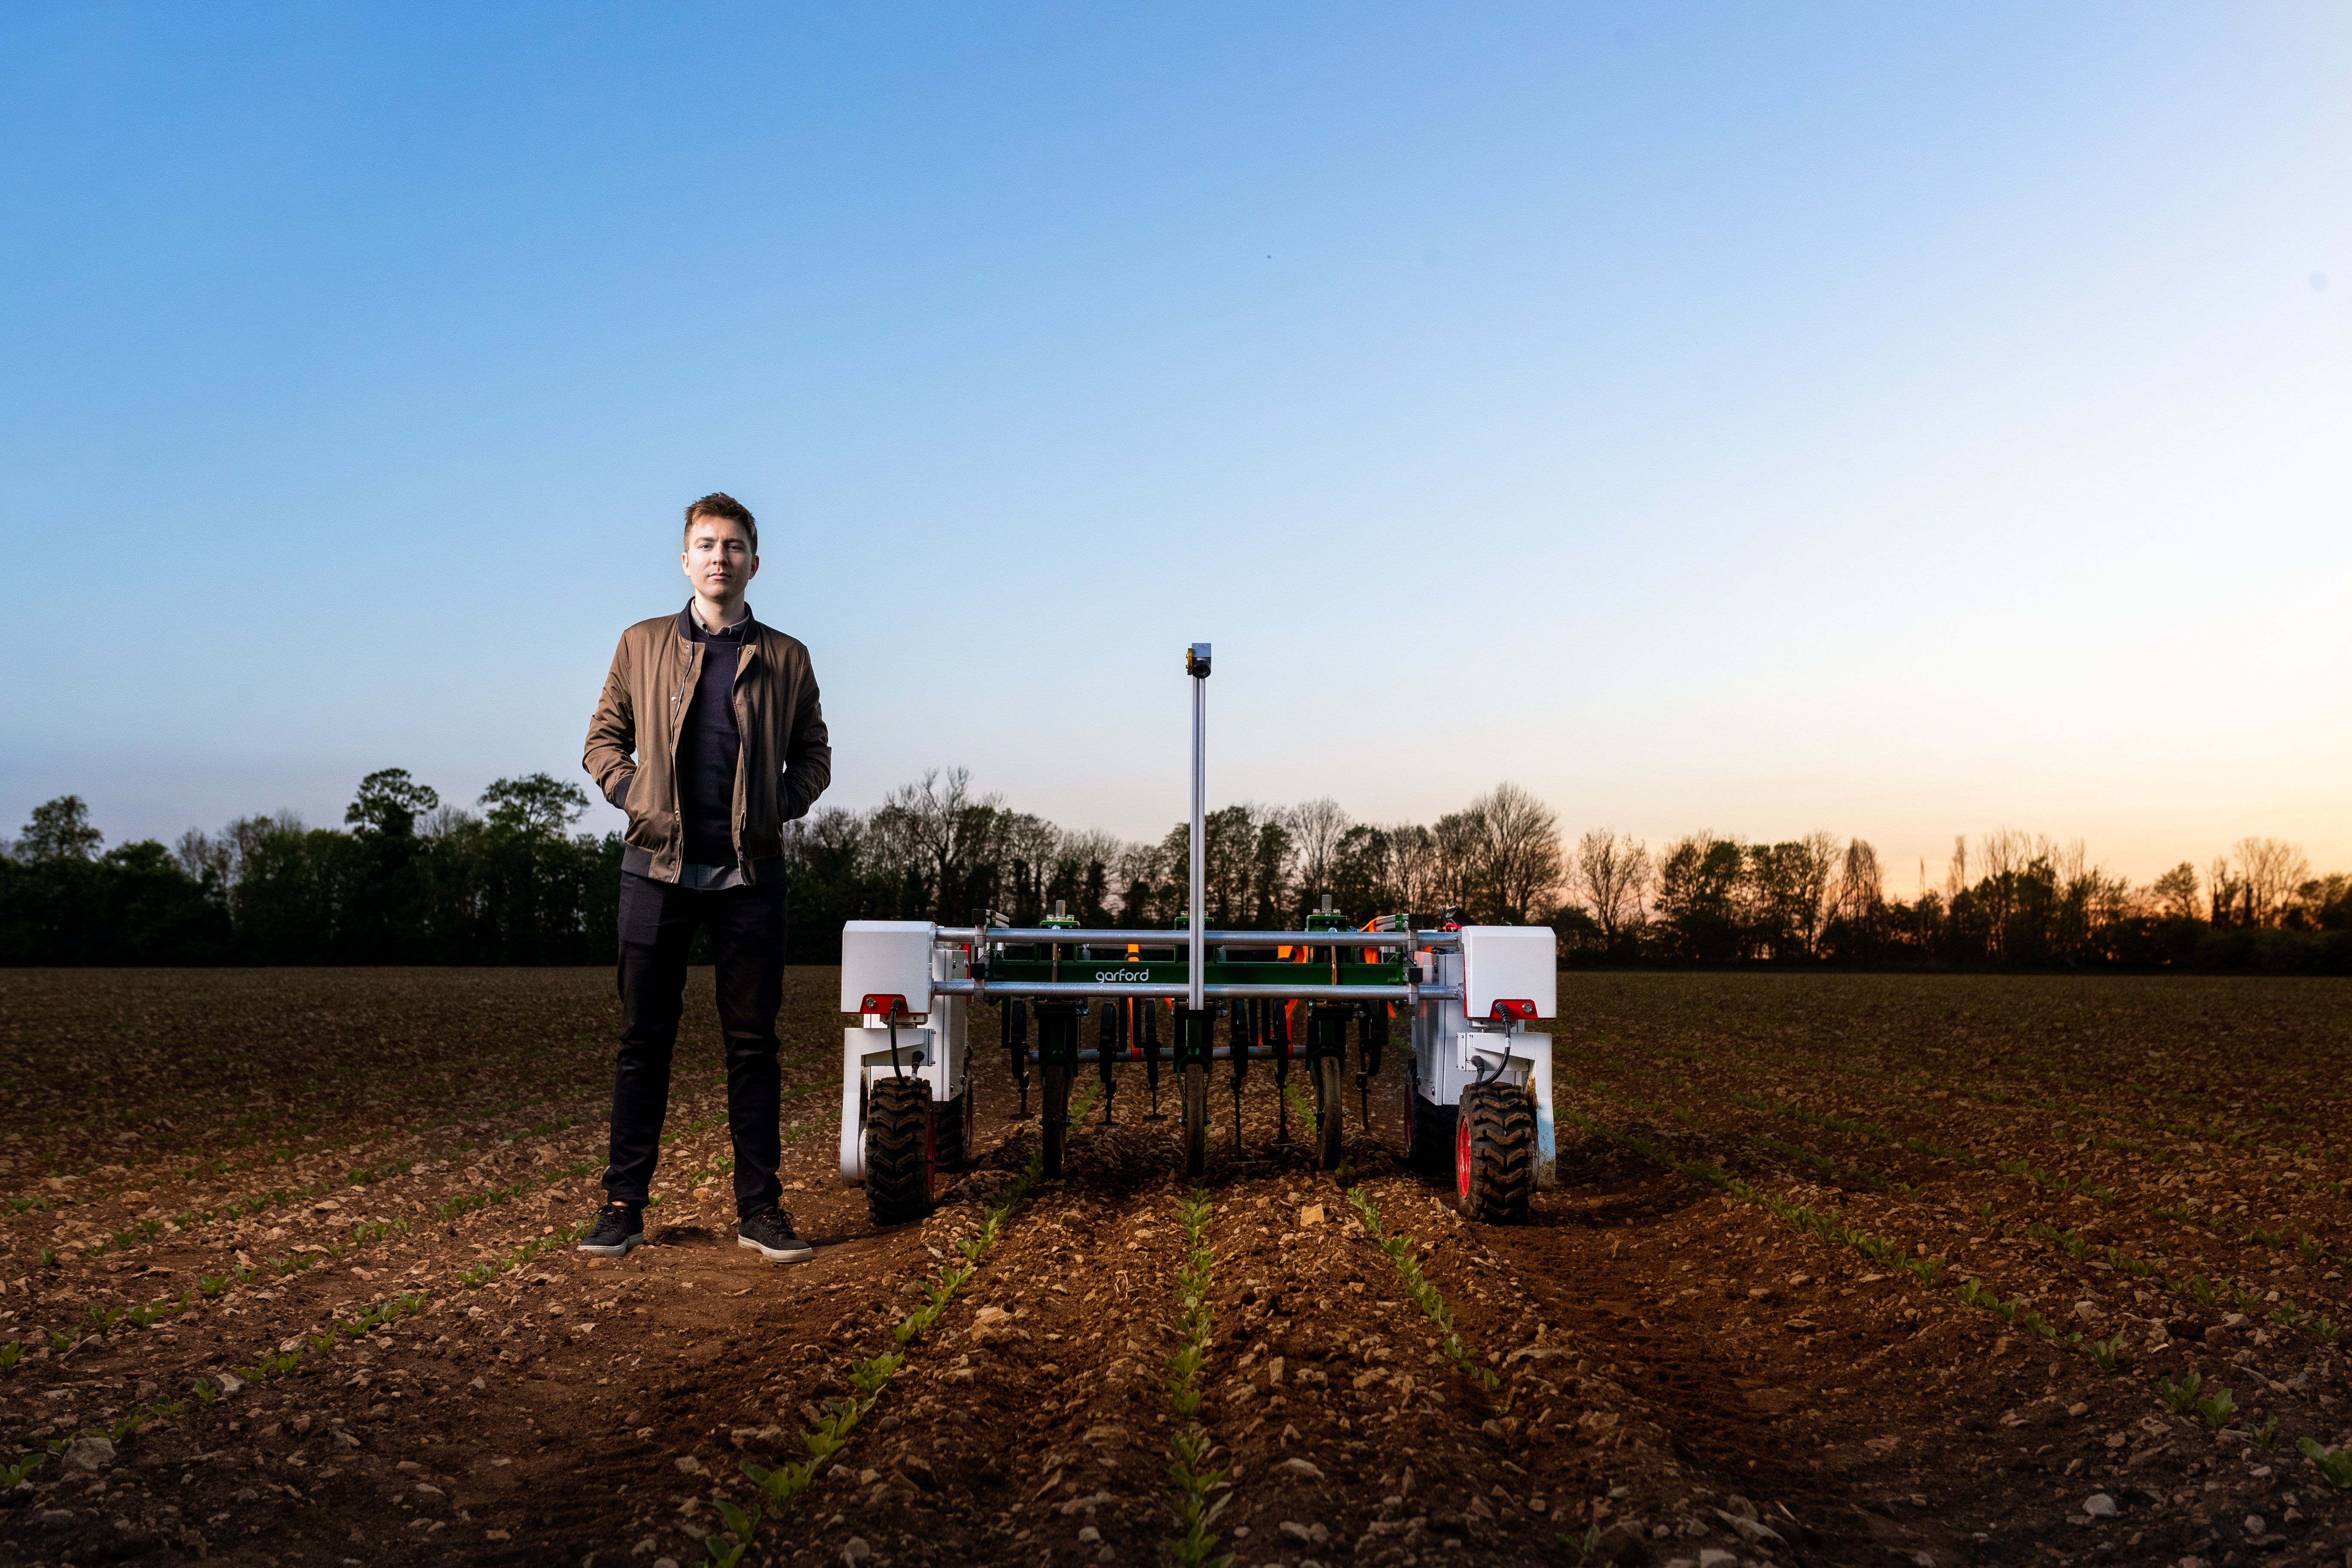 KTP image of farming technology